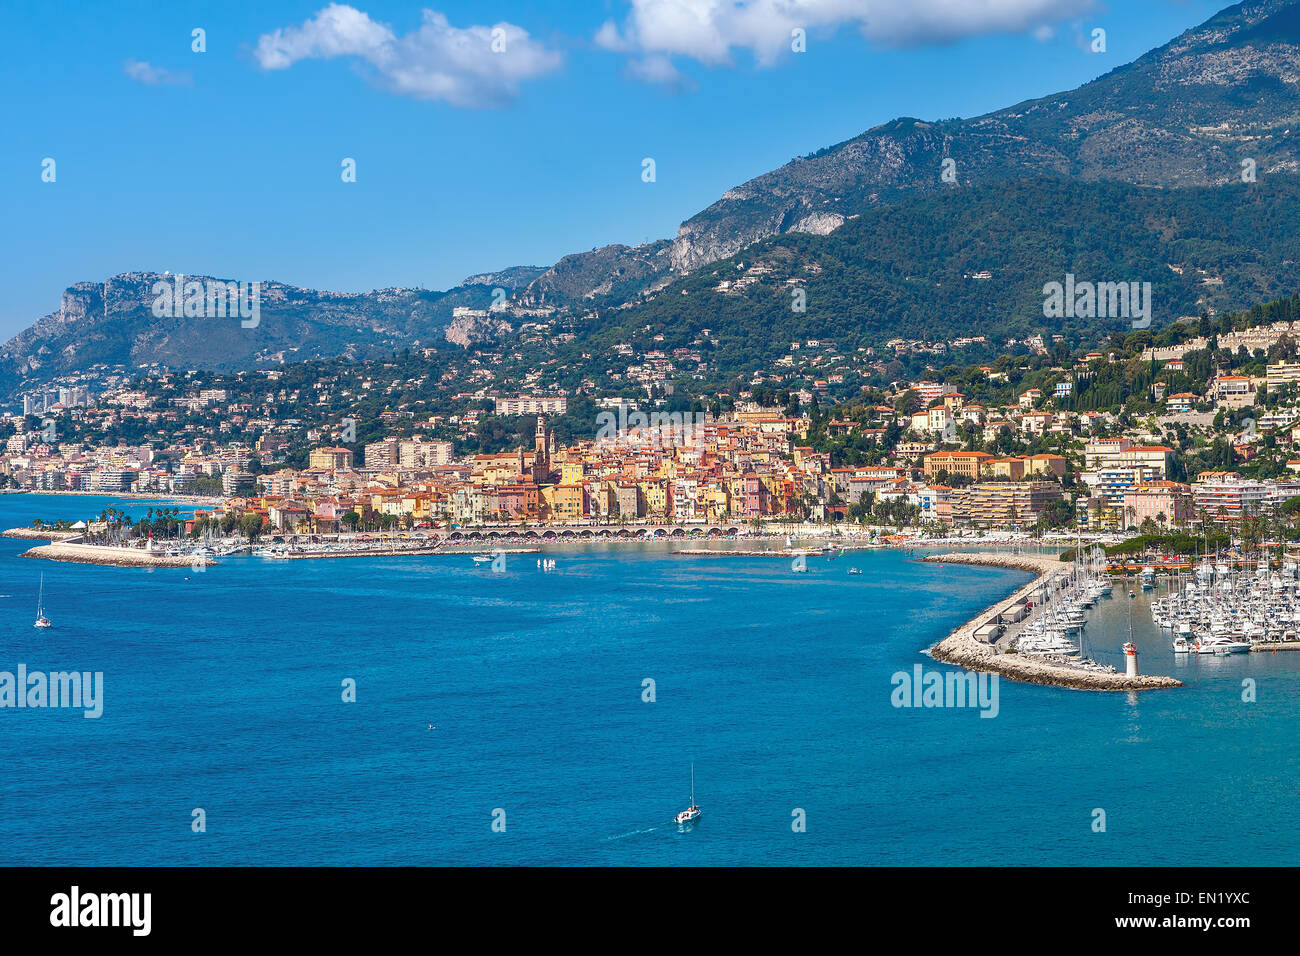 View on Mediterranean sea and small town of Menton on French Riviera. - Stock Image